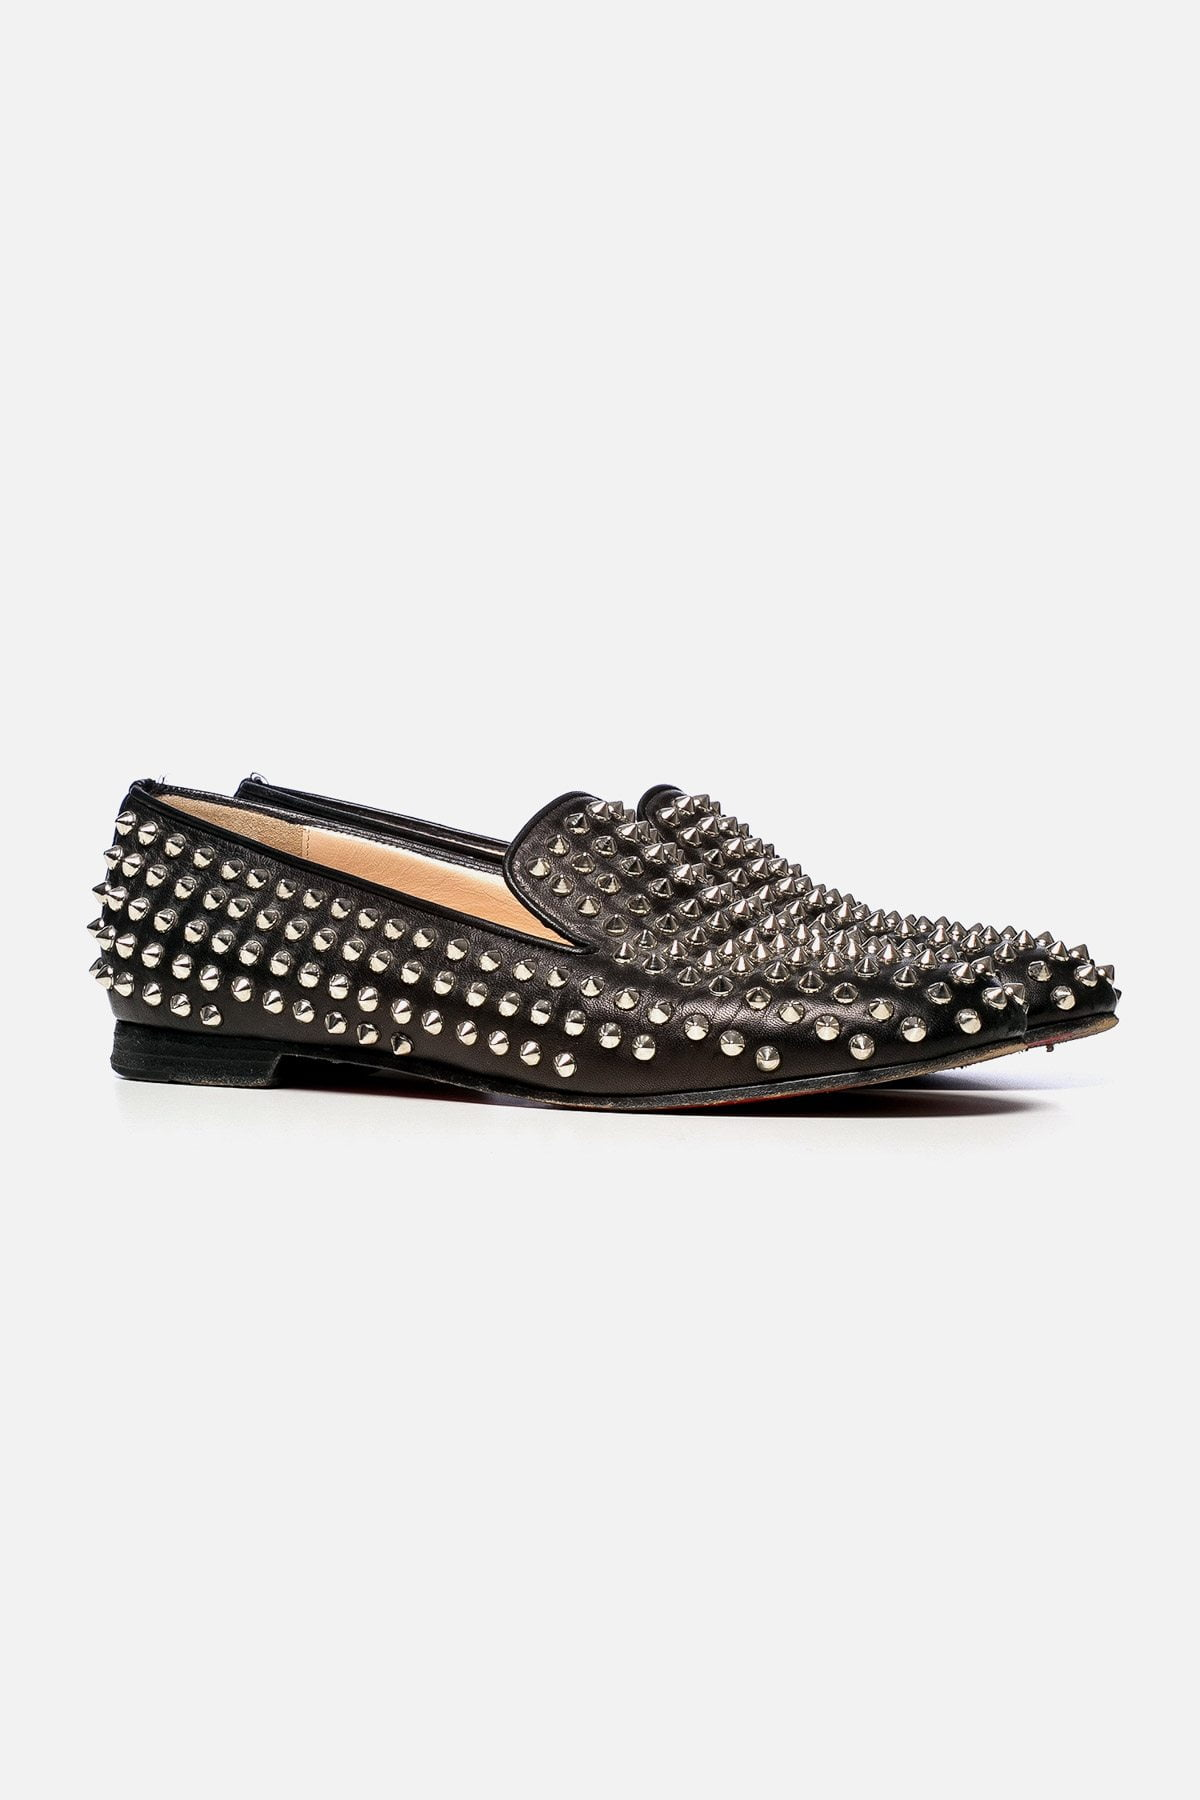 LEATHER SPIKE LOAFERS